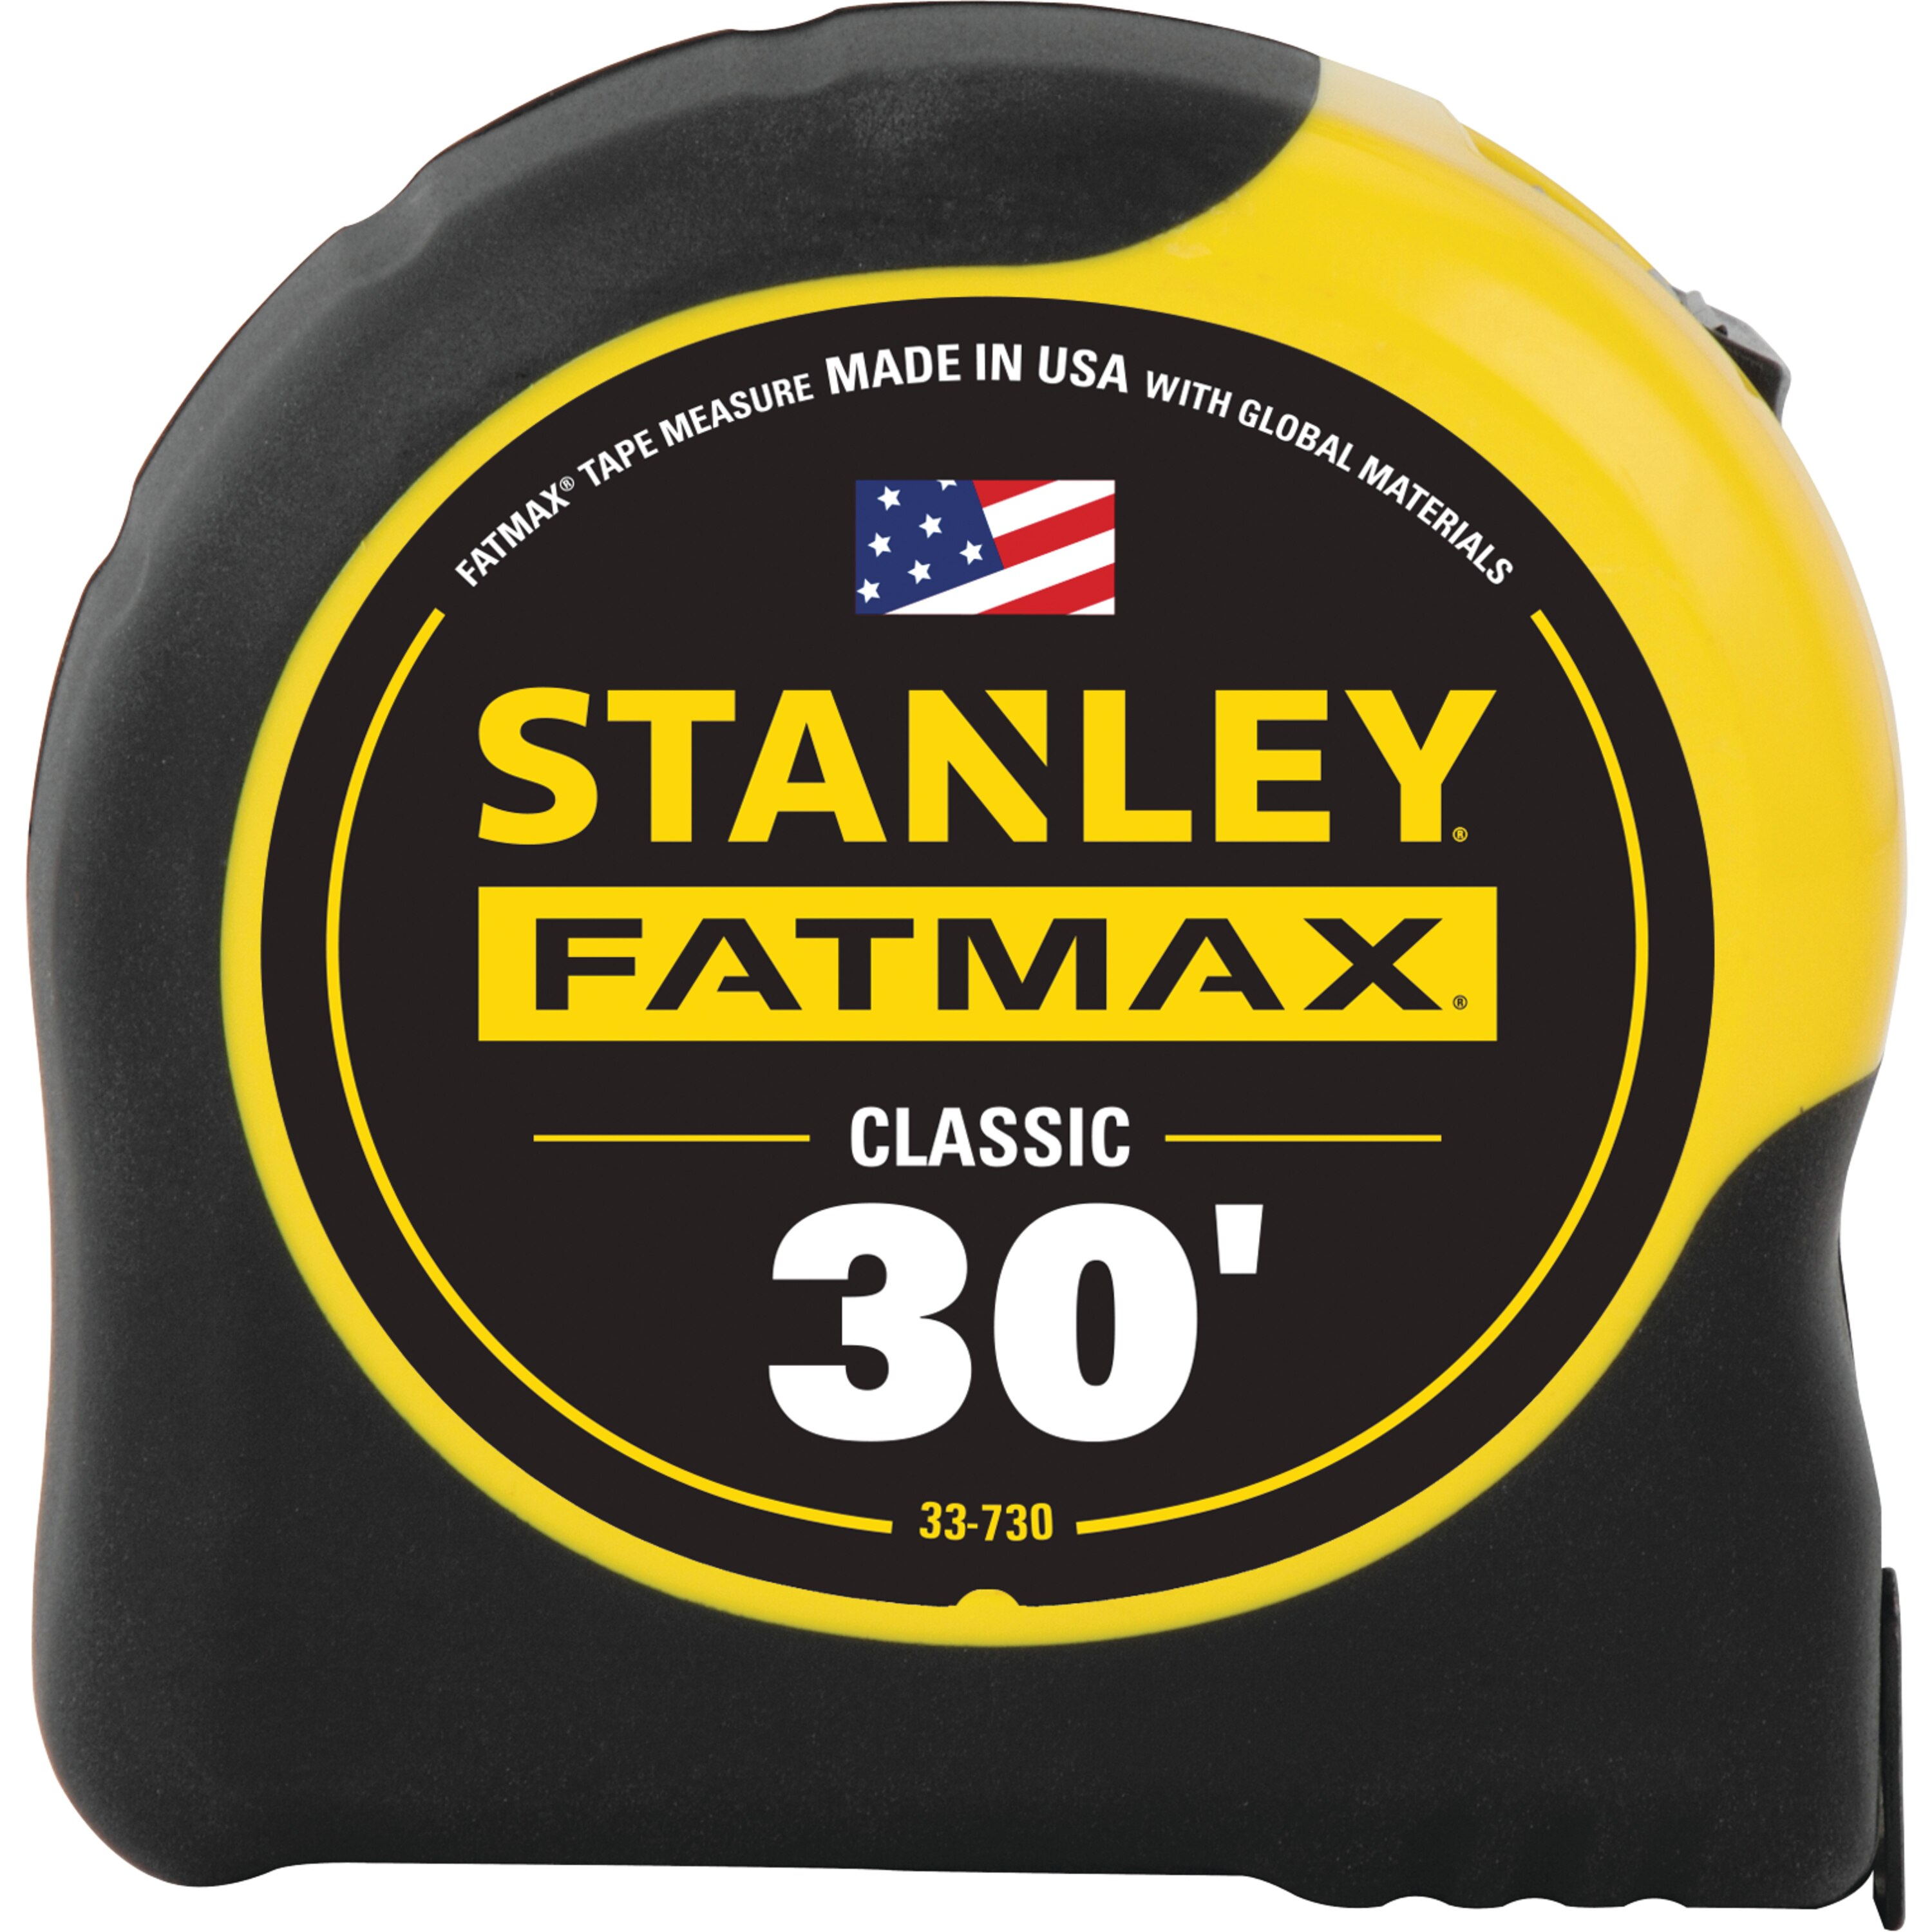 Stanley Tools - 30 ft FATMAX Classic Tape Measure - 33-730